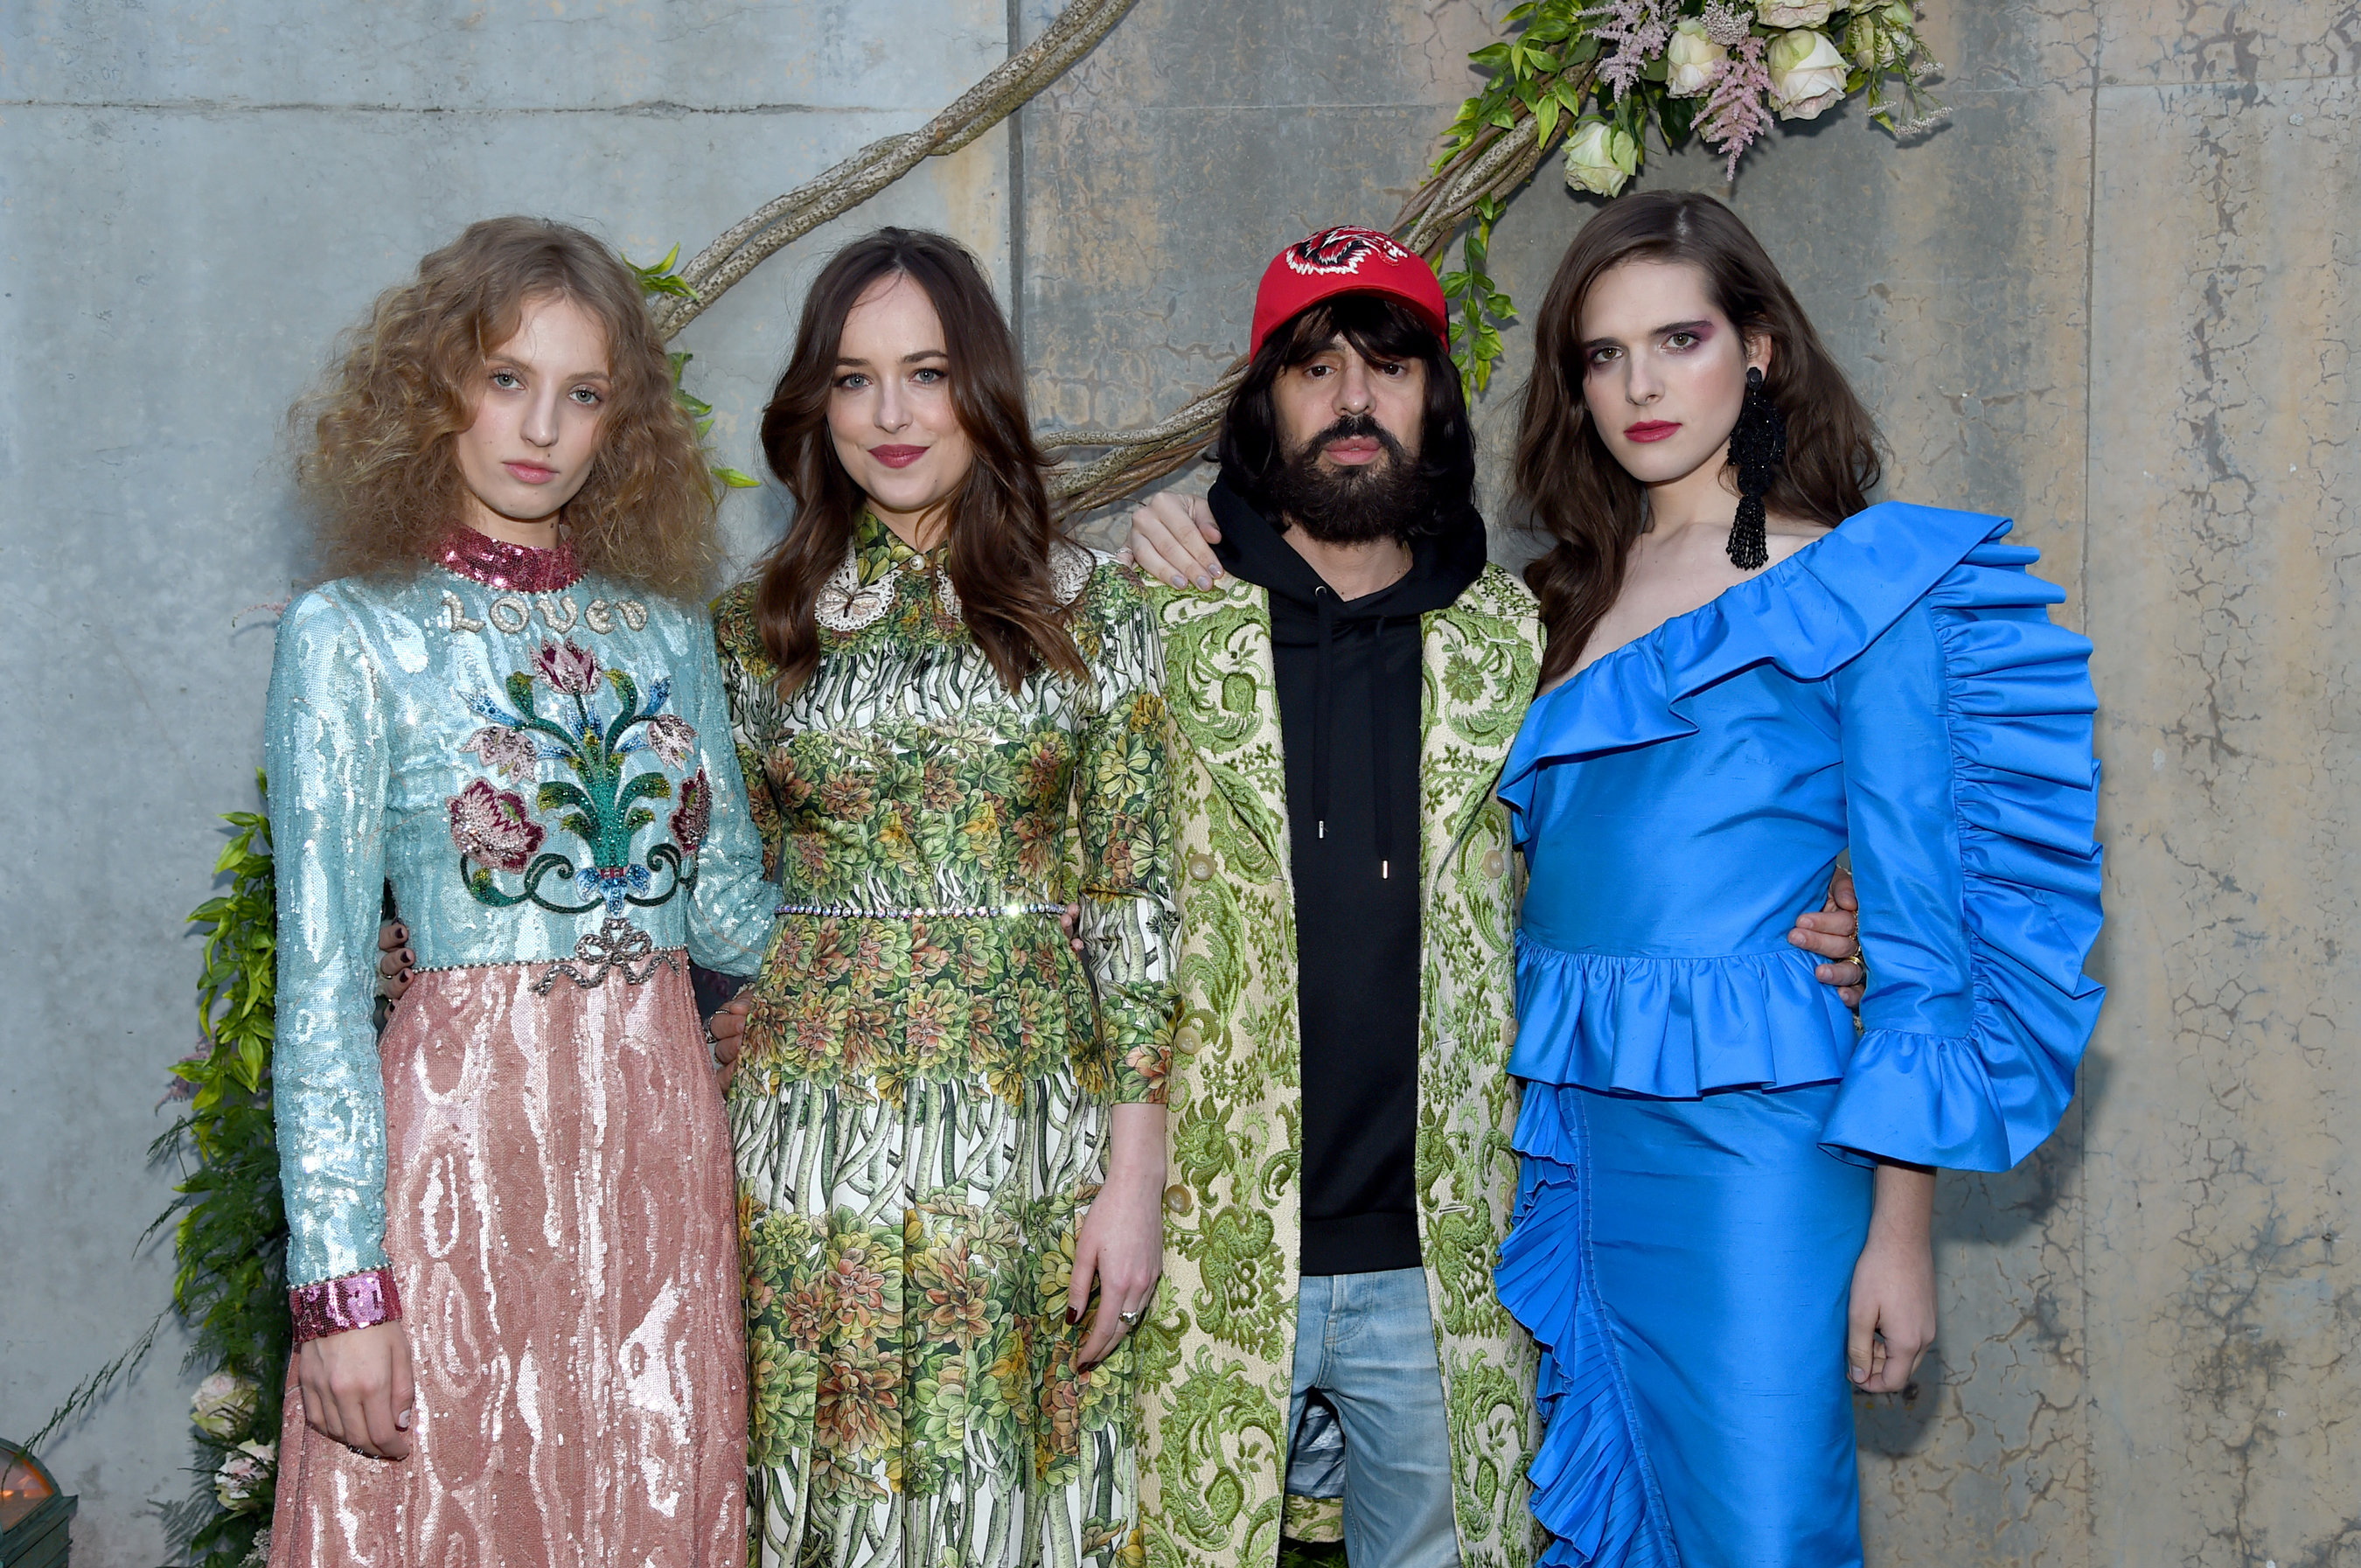 NEW YORK, NY - MAY 02: Petra Collins, Dakota Johnson, Alessandro Michele and Hari Nef attend the Gucci Bloom, Fragrance Launch Event at MoMA PS.1 on May 2, 2017 in New York City. (Photo by Jamie McCarthy/Getty Images for Gucci)